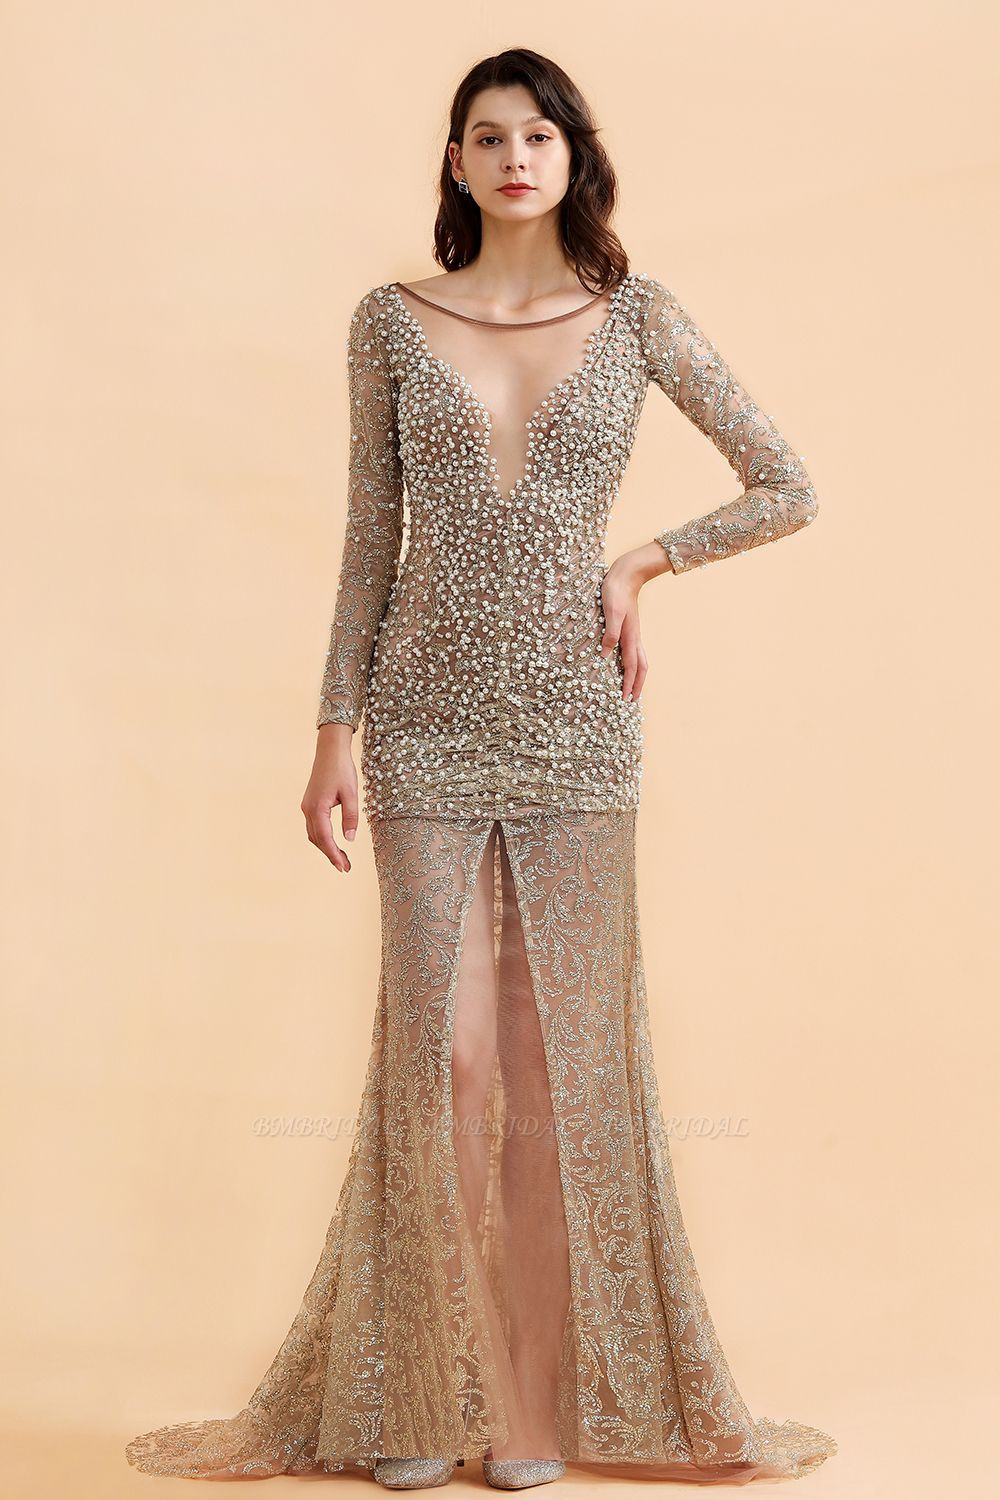 BMbridal Glamorous Jewel Lace Front Slit Prom Dresses Long Sleeves Appliques Formal Dresses with Pearls